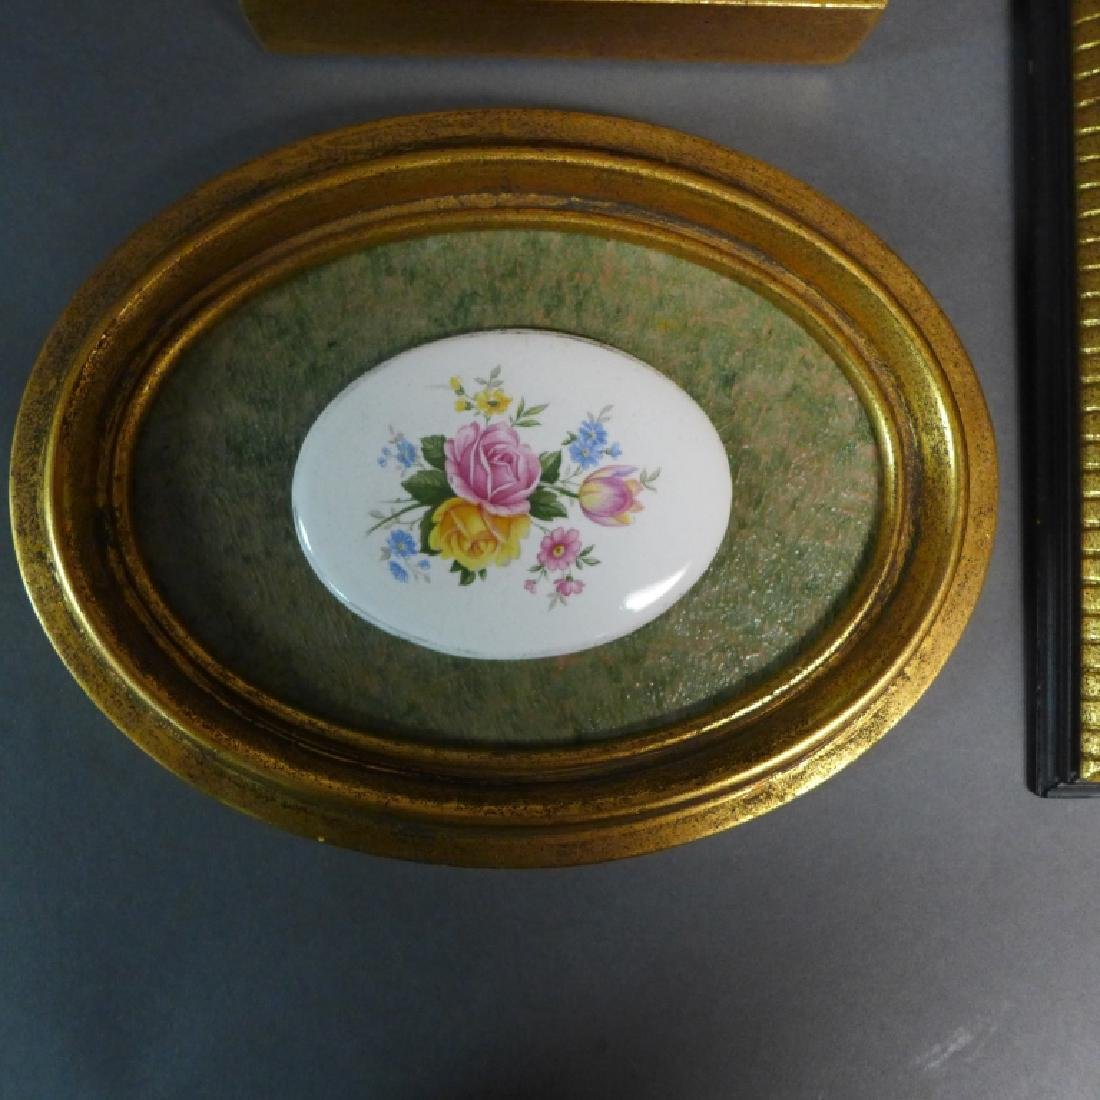 Framed Art by Saxon & Clemens Pictures - 2